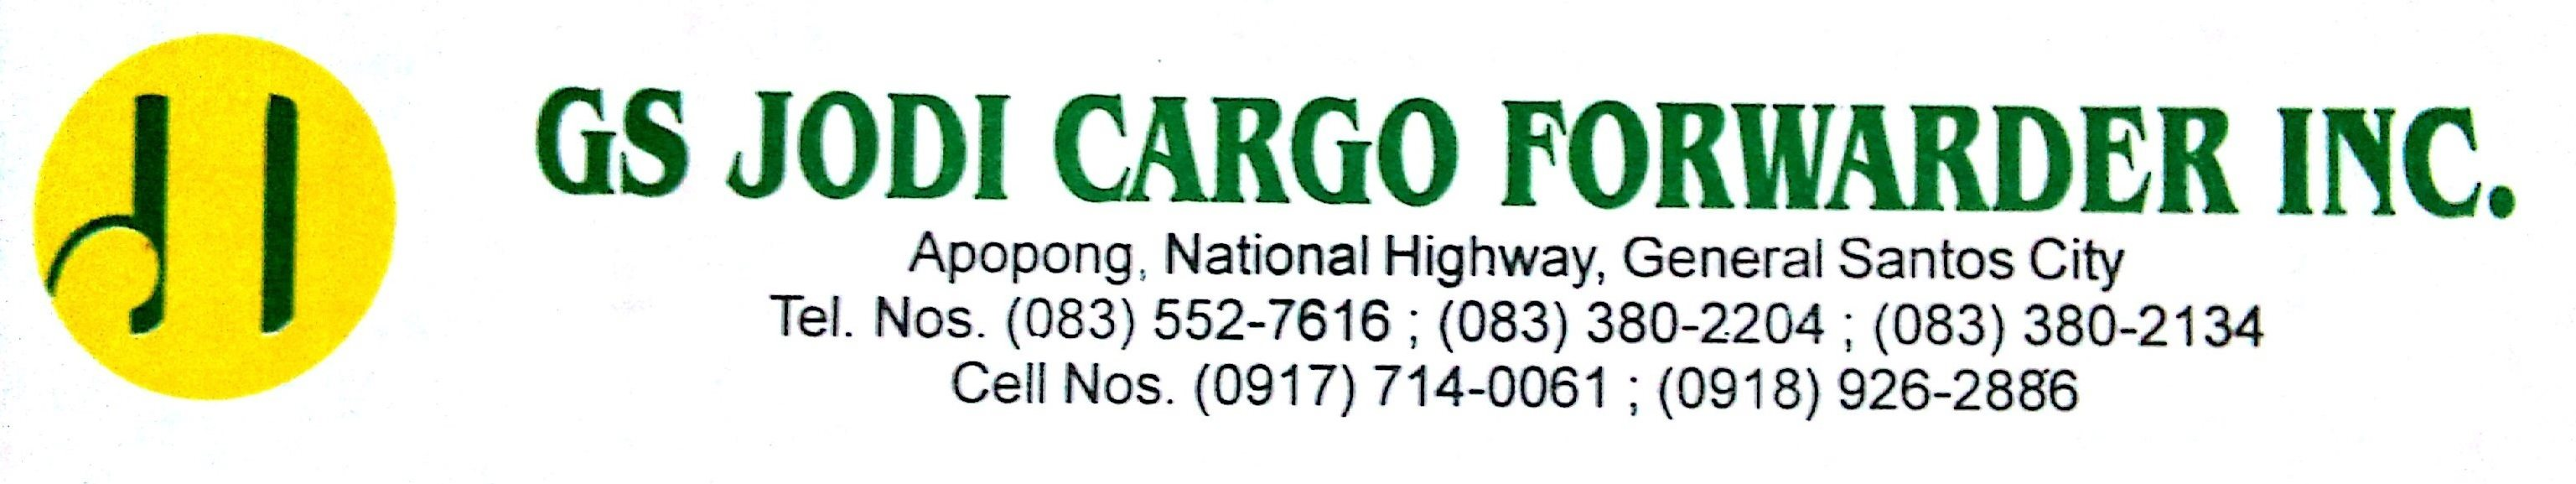 gs jodi cargo forwarder inc.